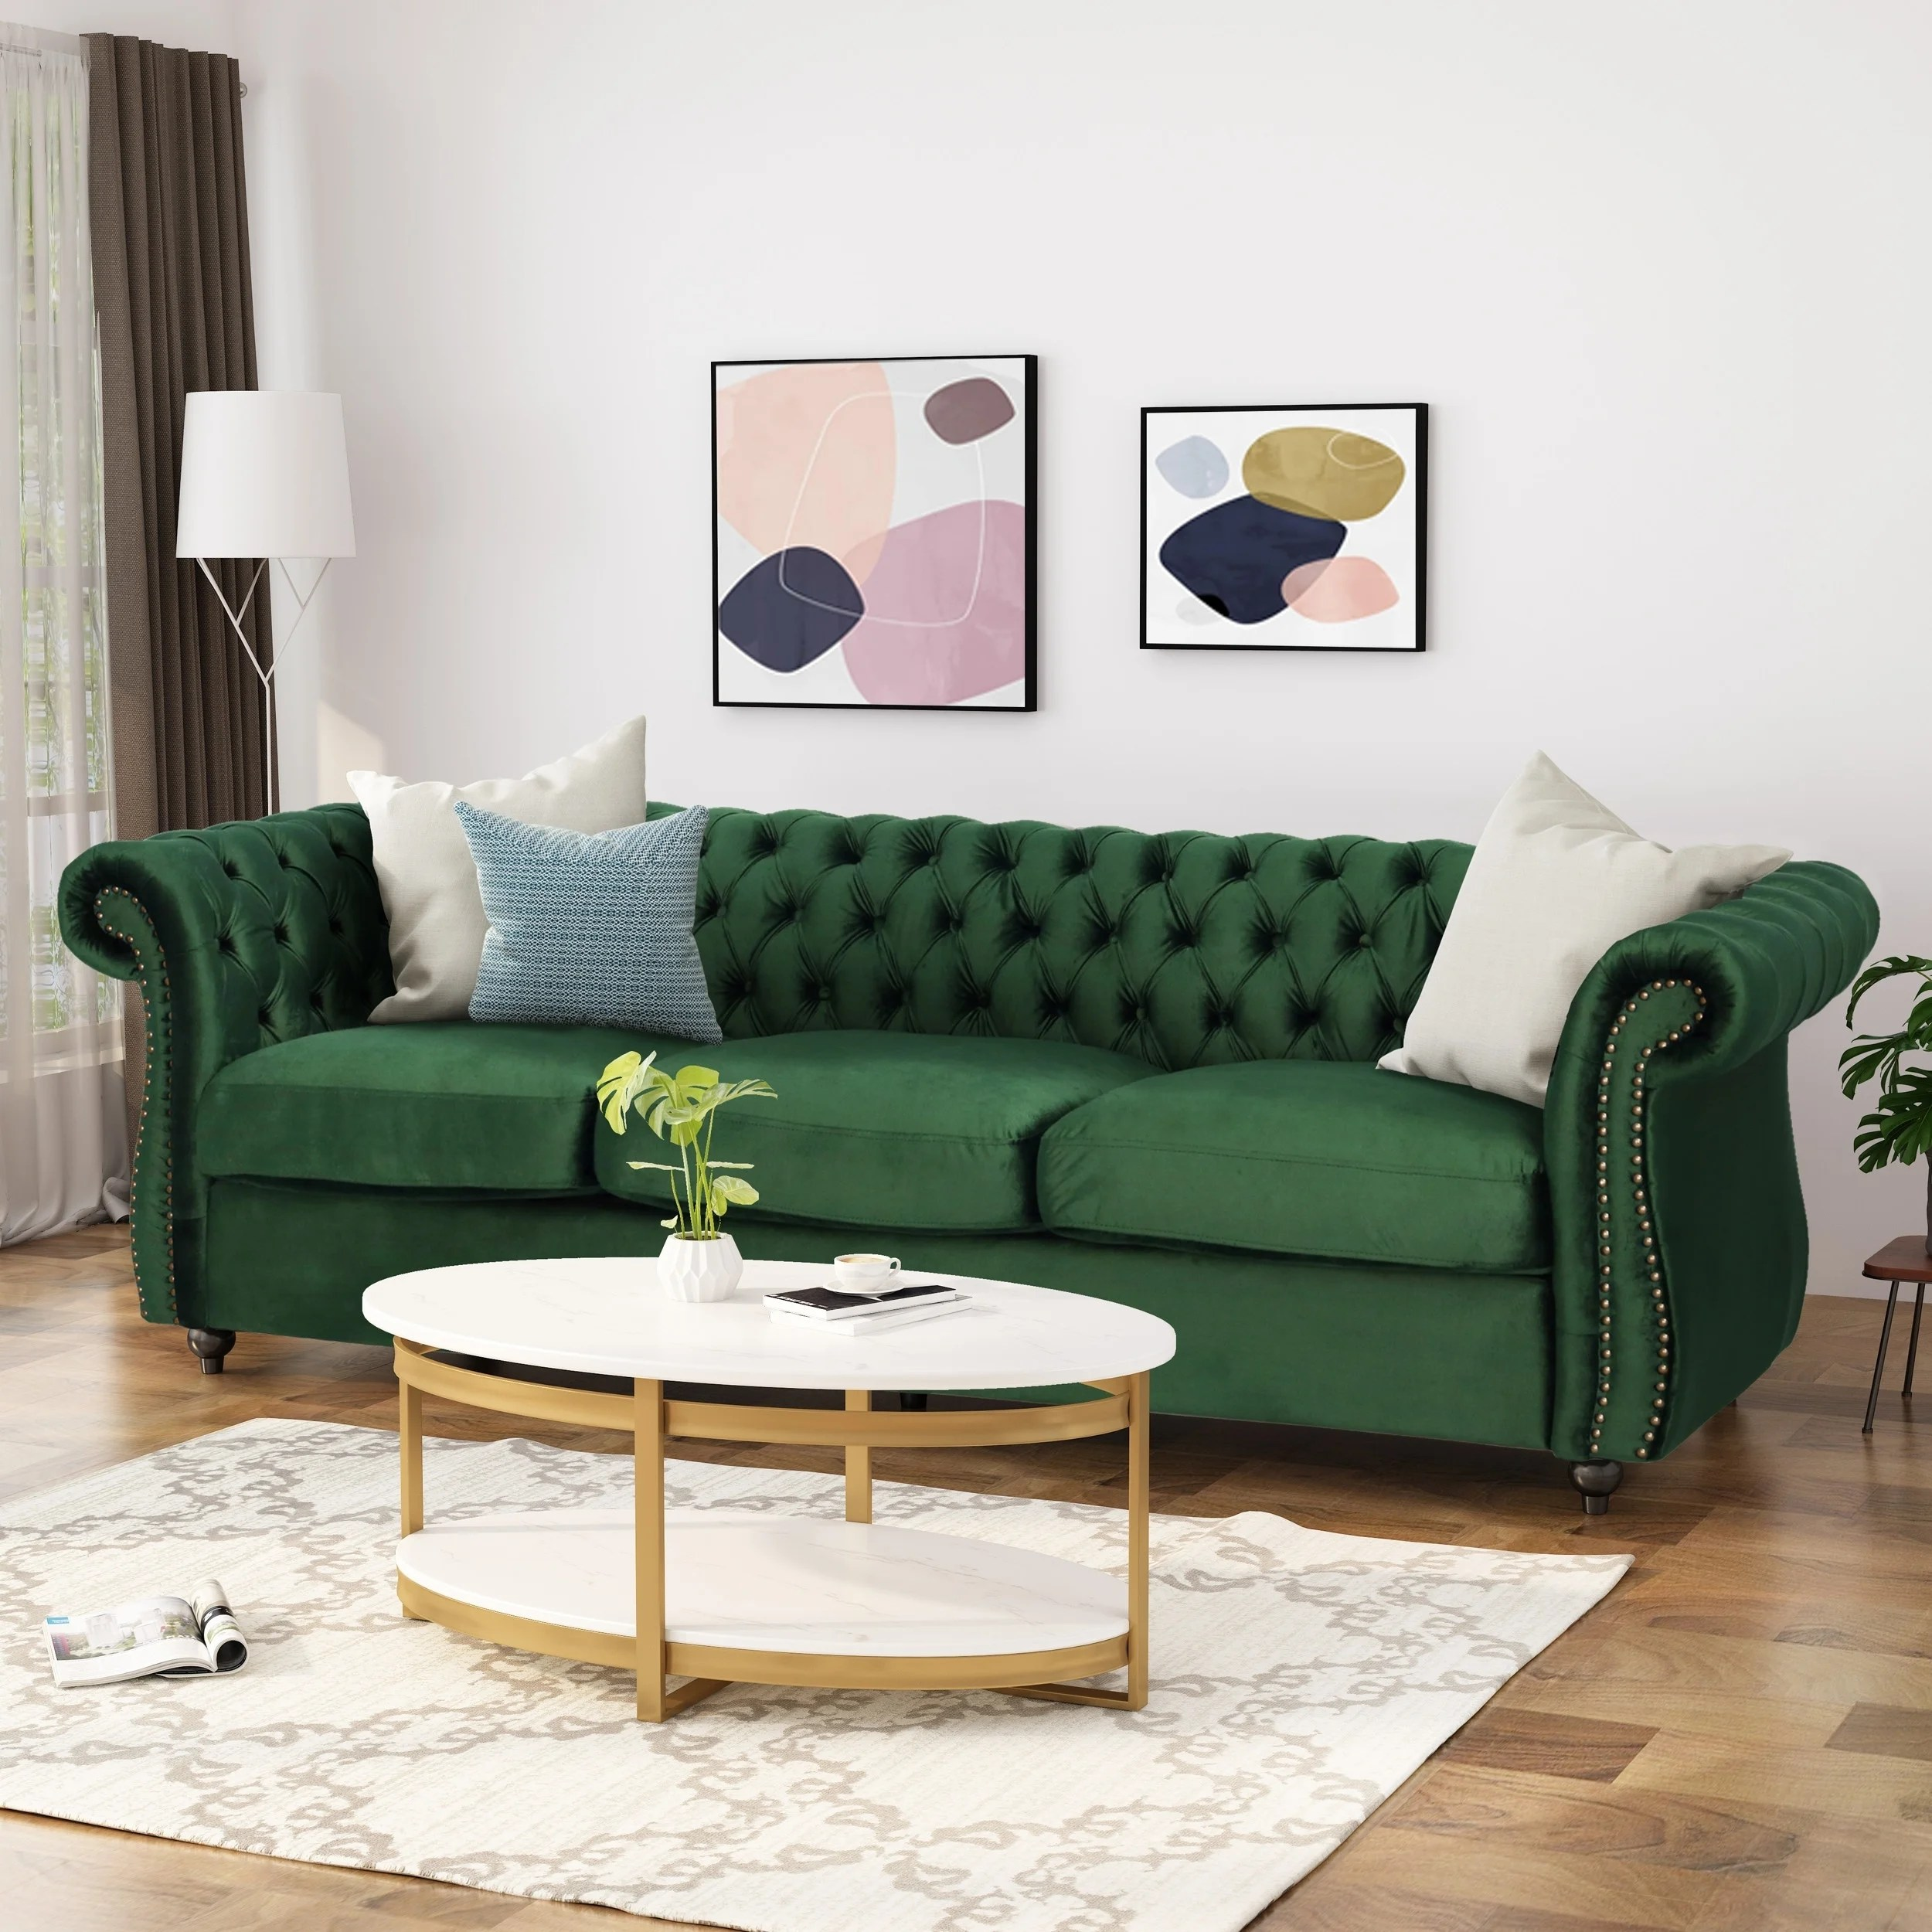 Buy Sofa Online Buy Sofas Couches Online At Overstock Our Best Living Room